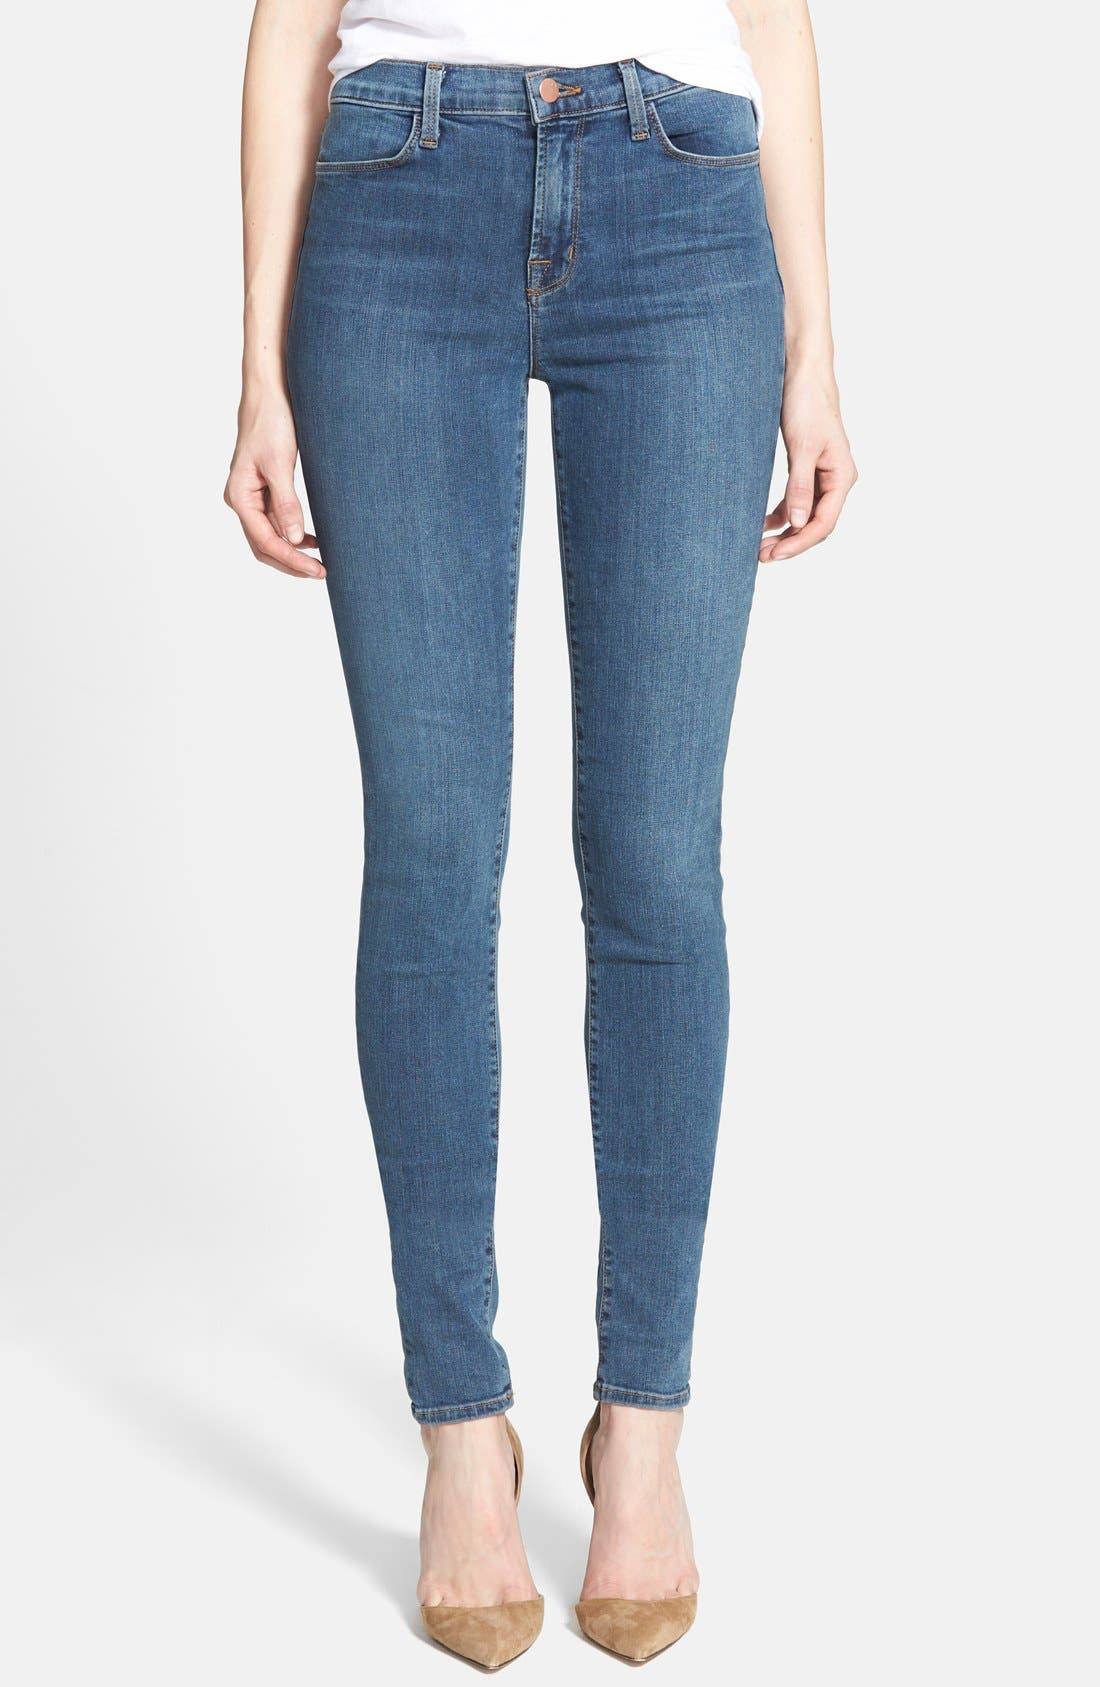 Alternate Image 1 Selected - J Brand 'Jess' High Rise Stacked Skinny Jeans (Beloved)